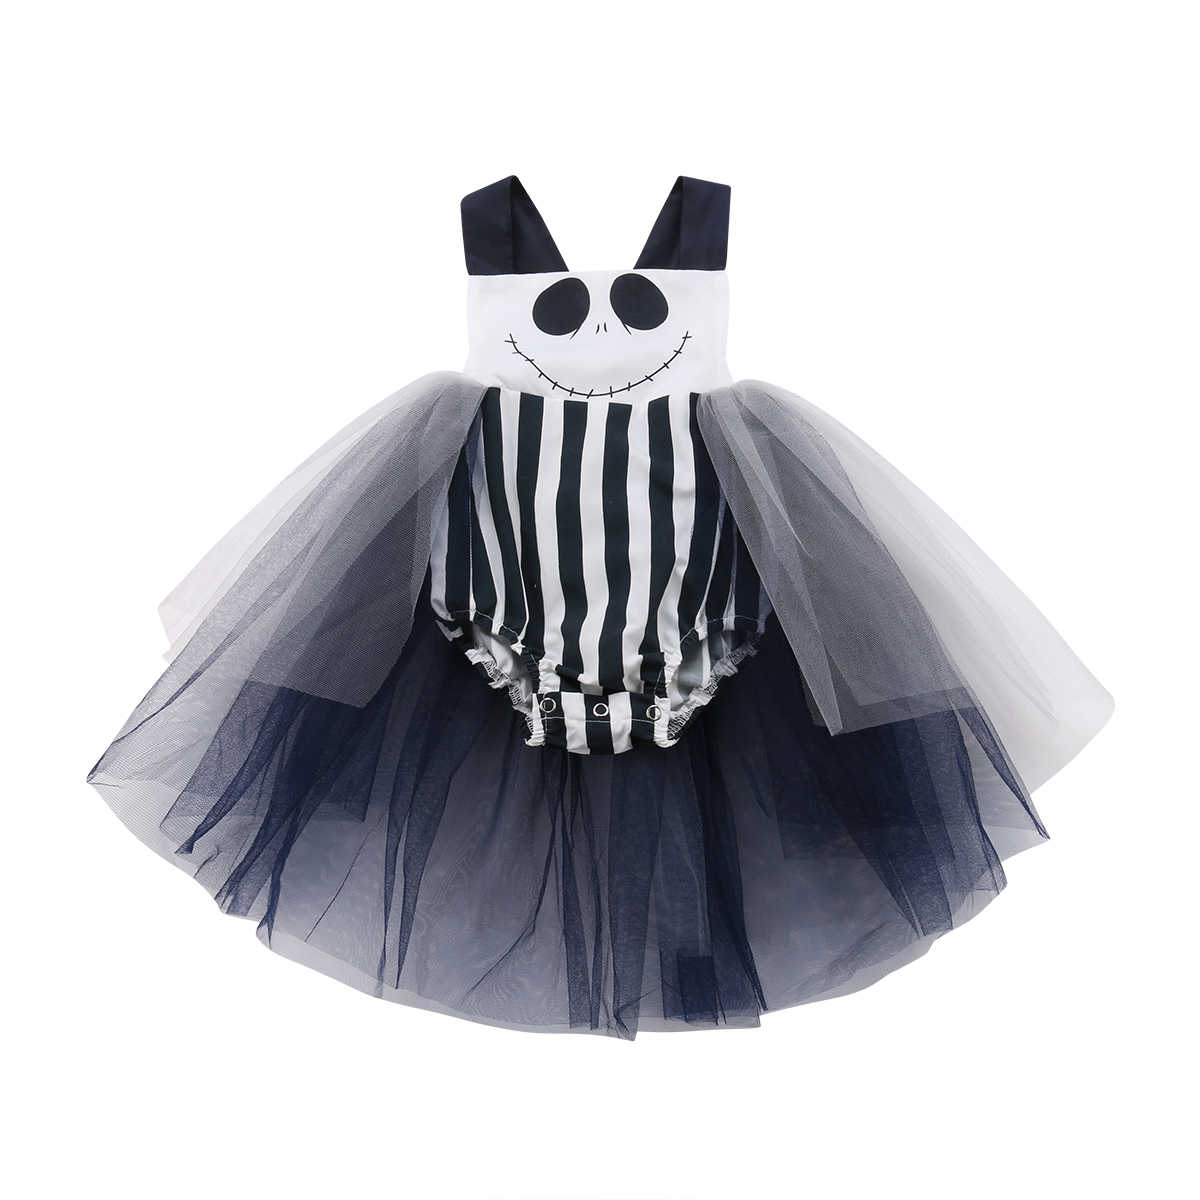 4fe142f48d73 Newborn Toddler Baby Girl Rompers Halloween Cute Baby Girl Lace Tutu  Jumpsuit Playsuit Baby Clothes Holiday